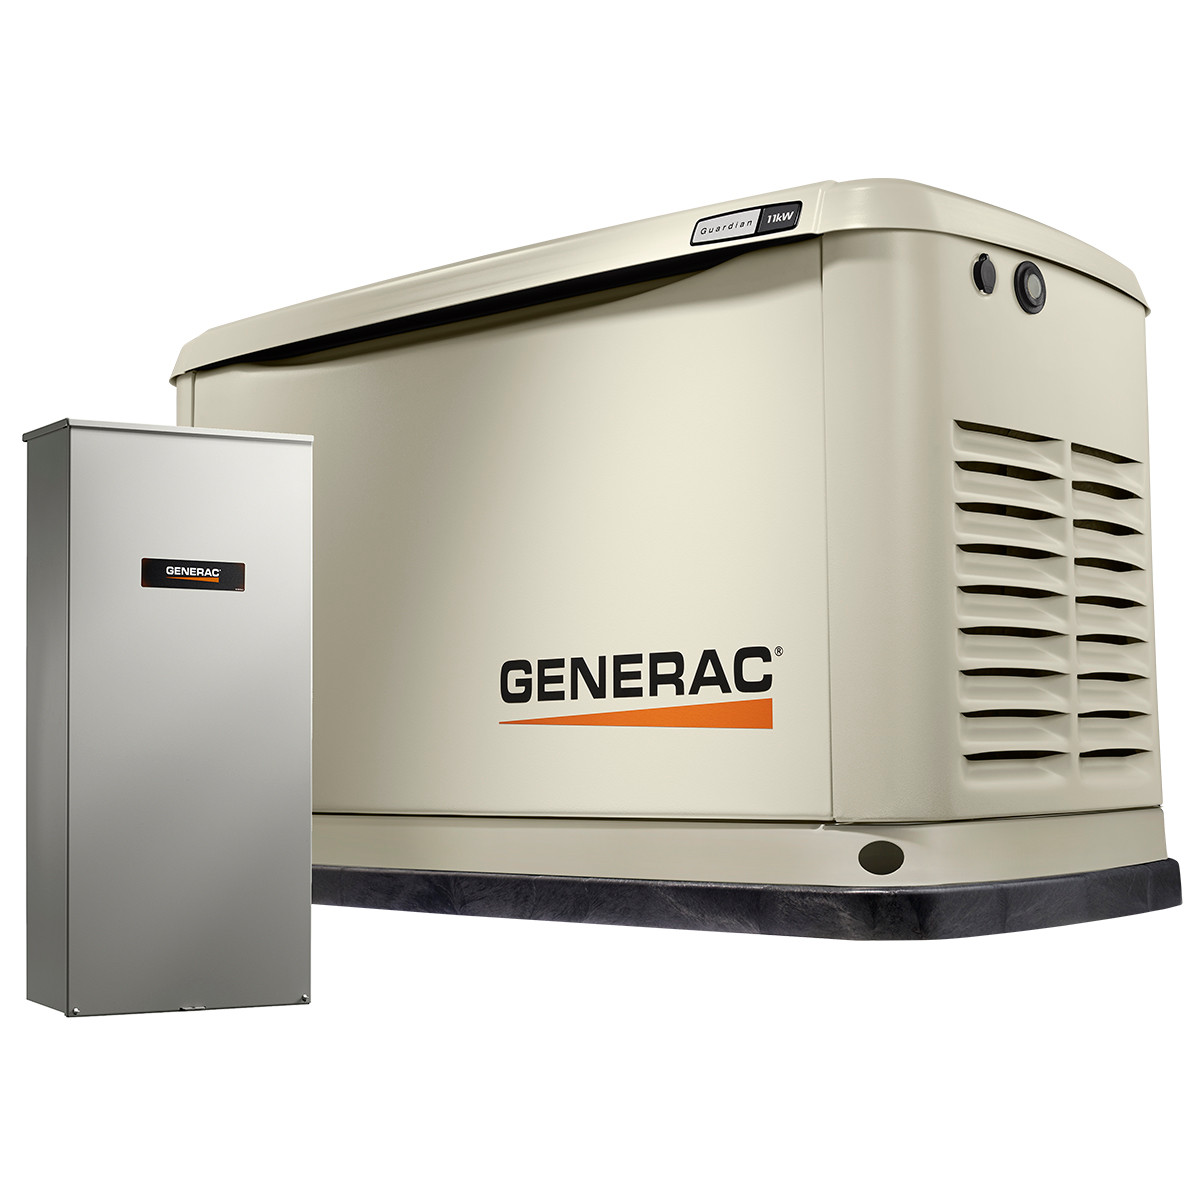 generac guardian 7033 11kw generator with 200a se transfer switch [ 1200 x 1200 Pixel ]